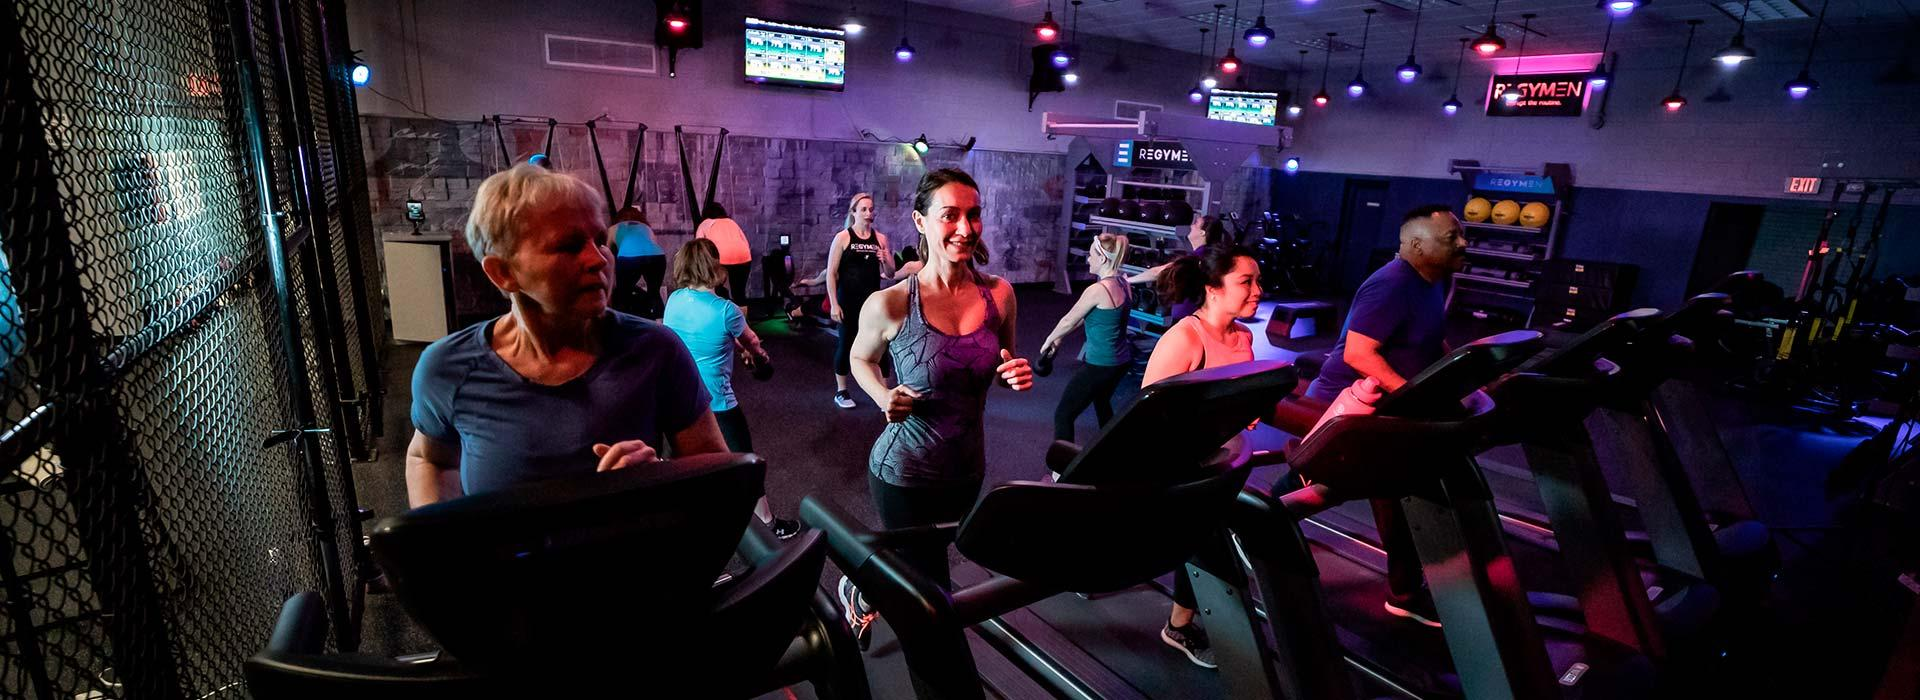 People running on treadmills in REGYMEN fitness workout